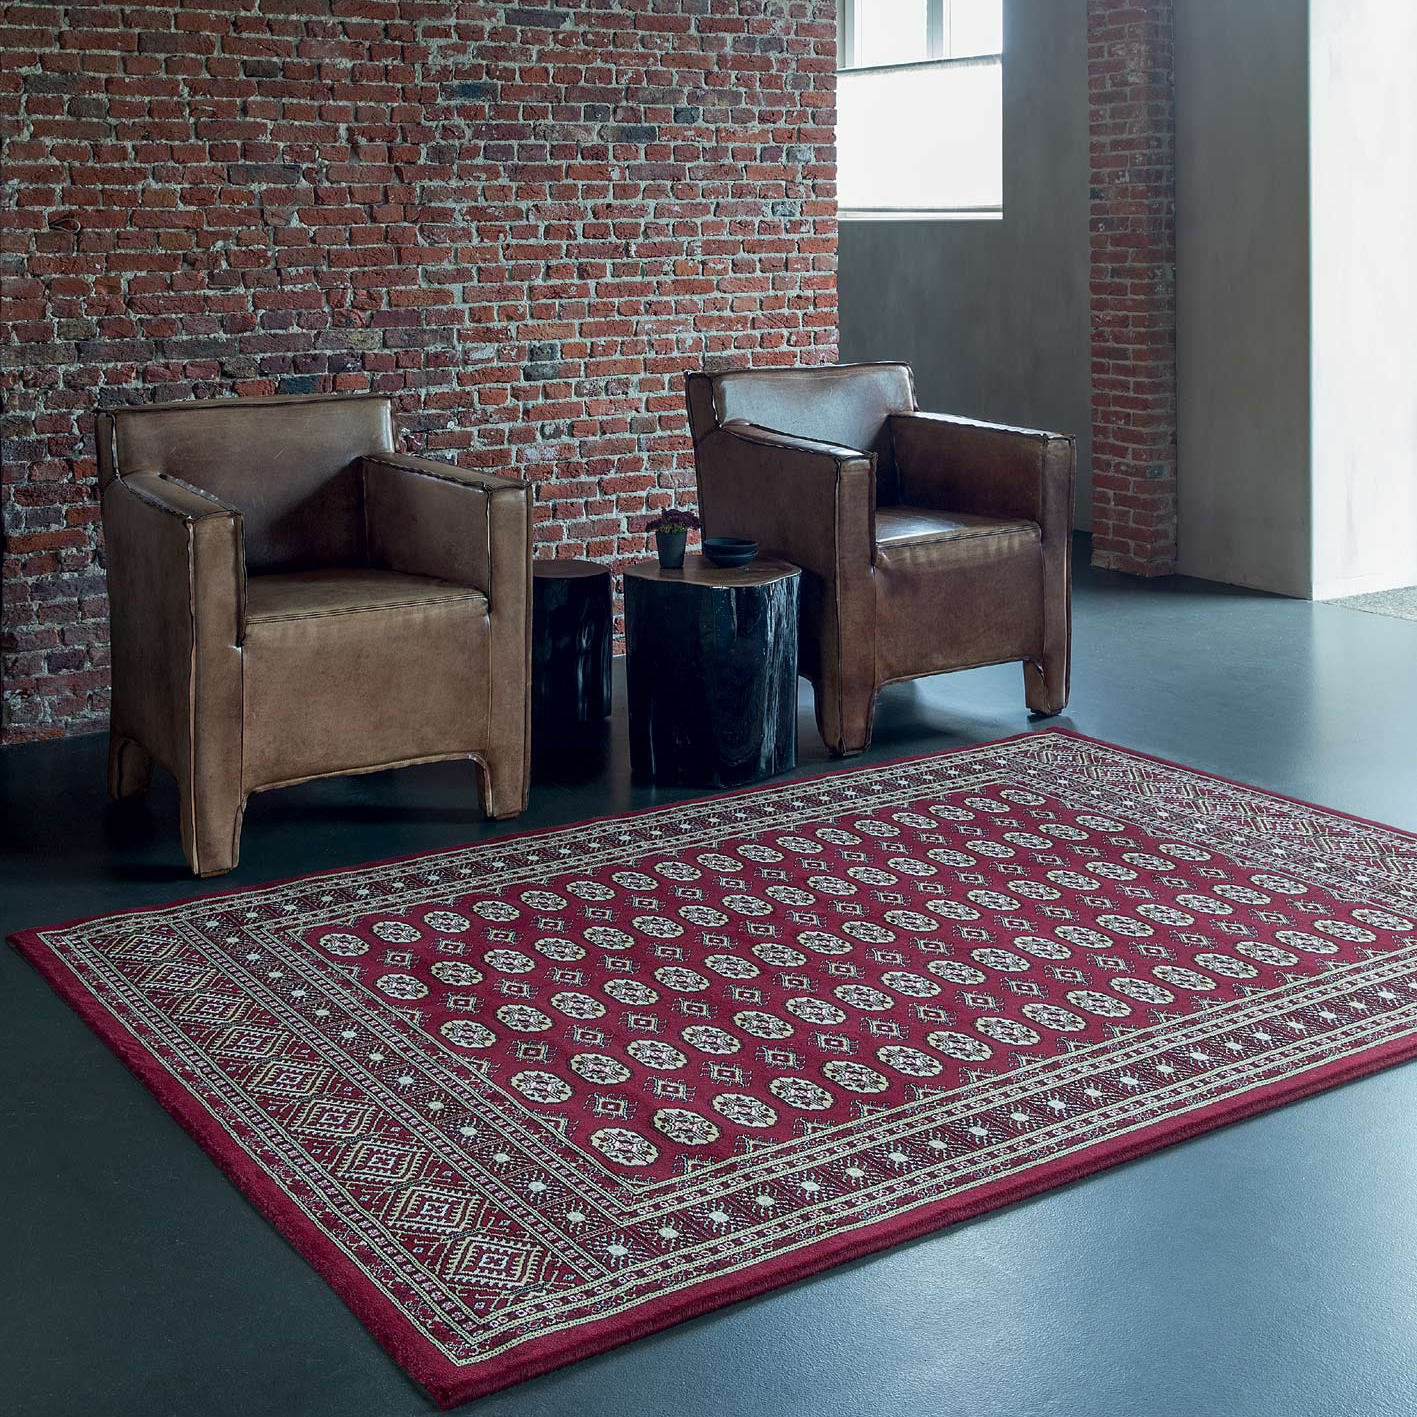 red noble art traditional rug in industrial styled interior with 2 chairs and a table